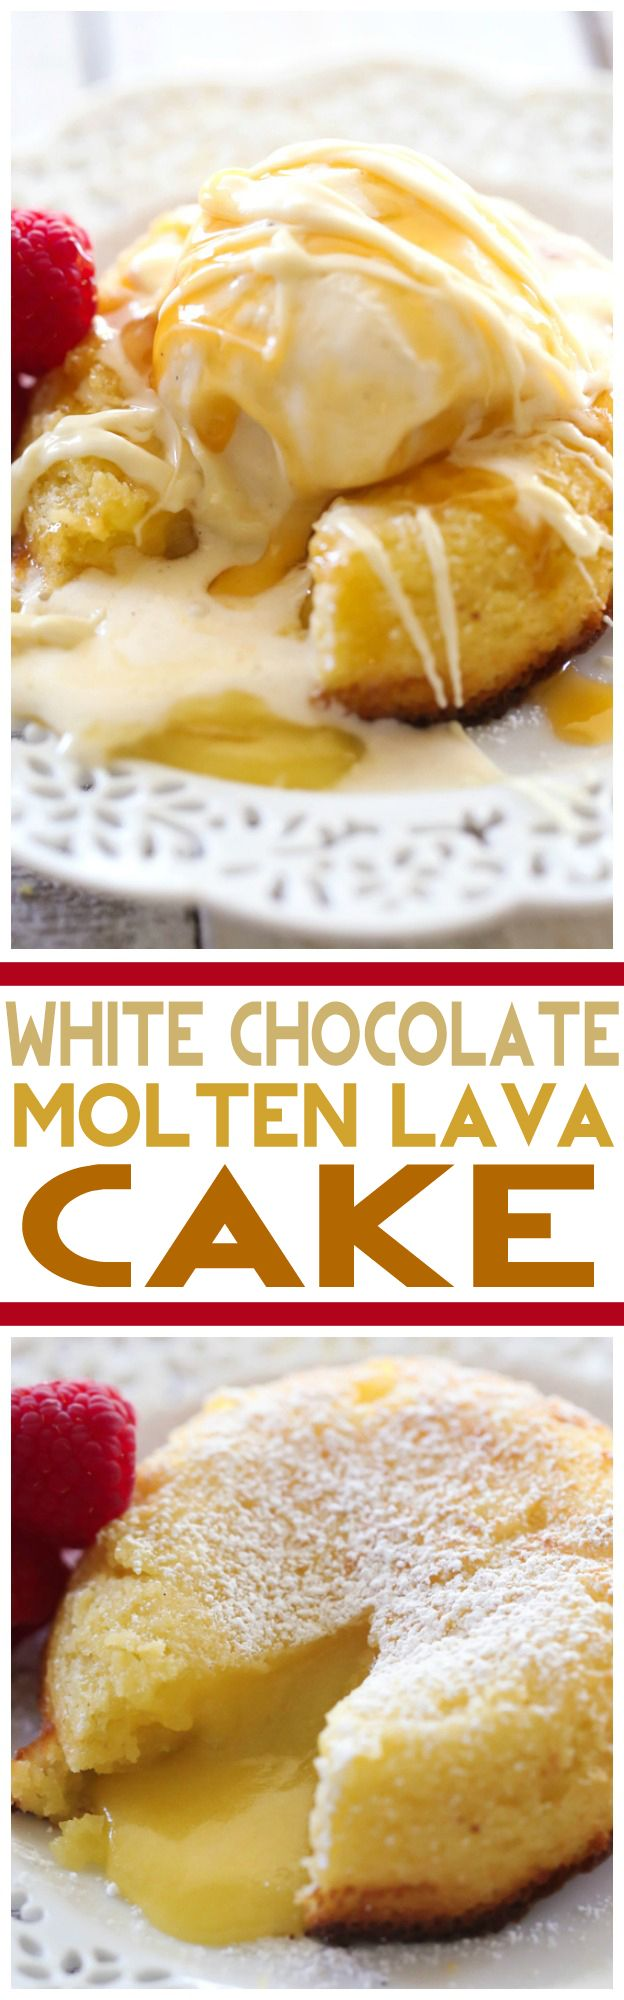 White Chocolate Molten Lava Cake… This cake is truly AMAZING! It is infused with melted goodness in each and every bite. It is